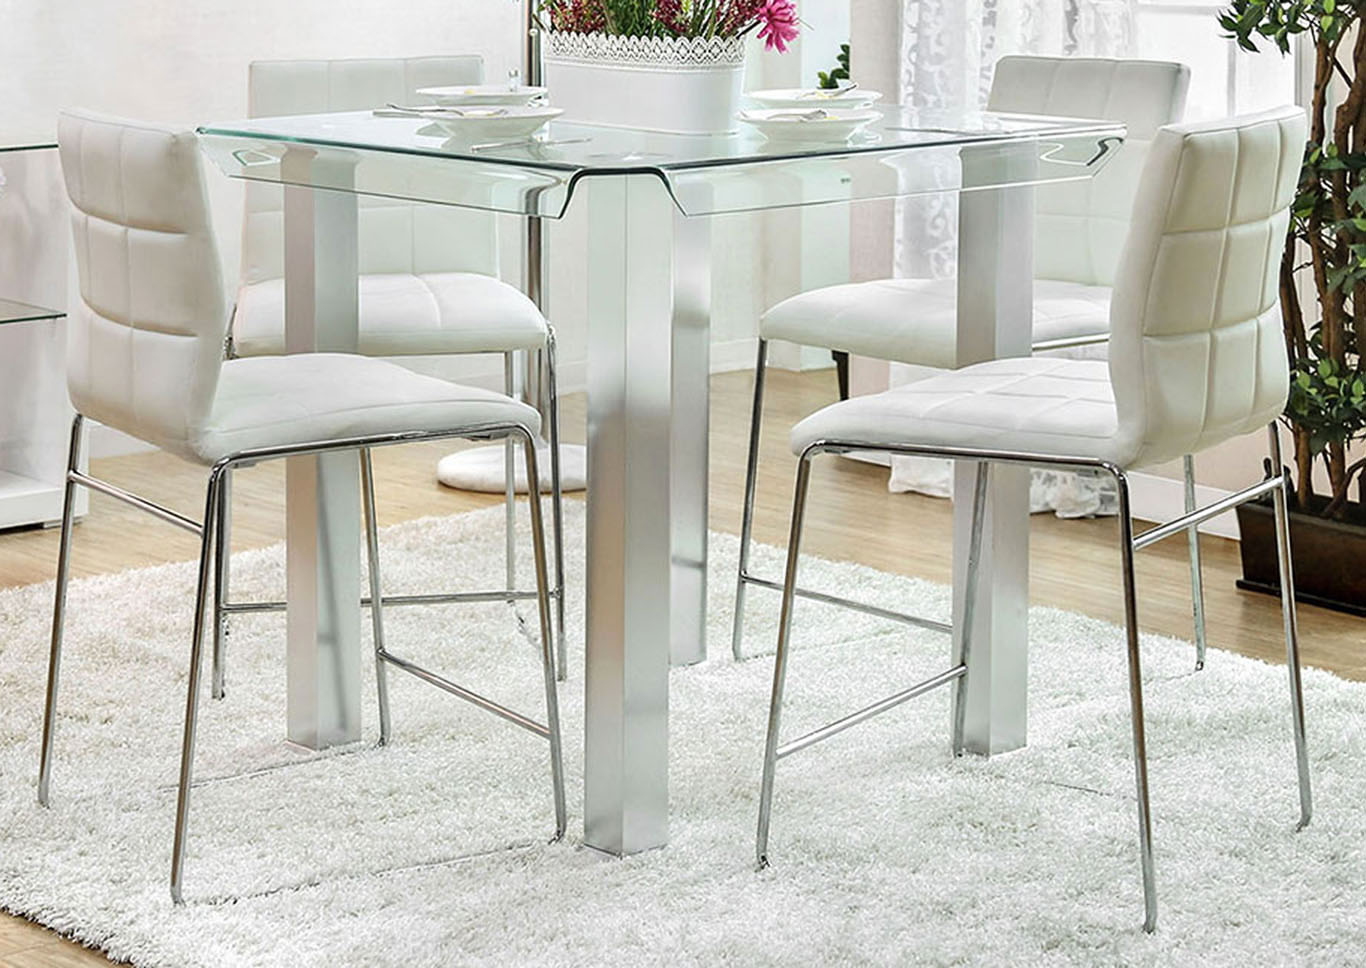 Richfield II Silver/Chrome Glass Counter Height Table,Furniture of America